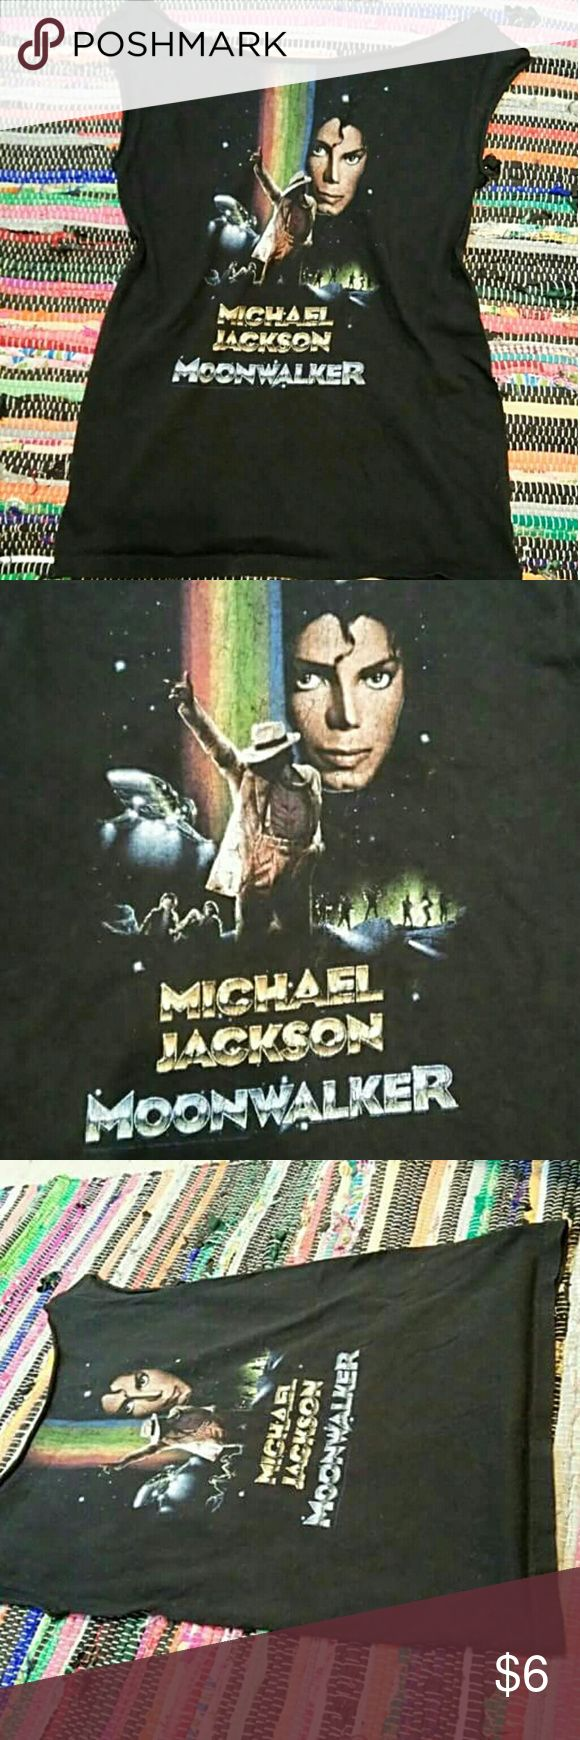 Vintage Michael Jackson Tee This t-shirt is for a Michael Jackson video game that came out in the early 90's. The teacher is so most likely it was manufactured in late nineties to very early 2000. The neck and sleeves have been cut which give it a scary dancer, vintage look. Think Flashdance. Vintage Tops Tees - Short Sleeve